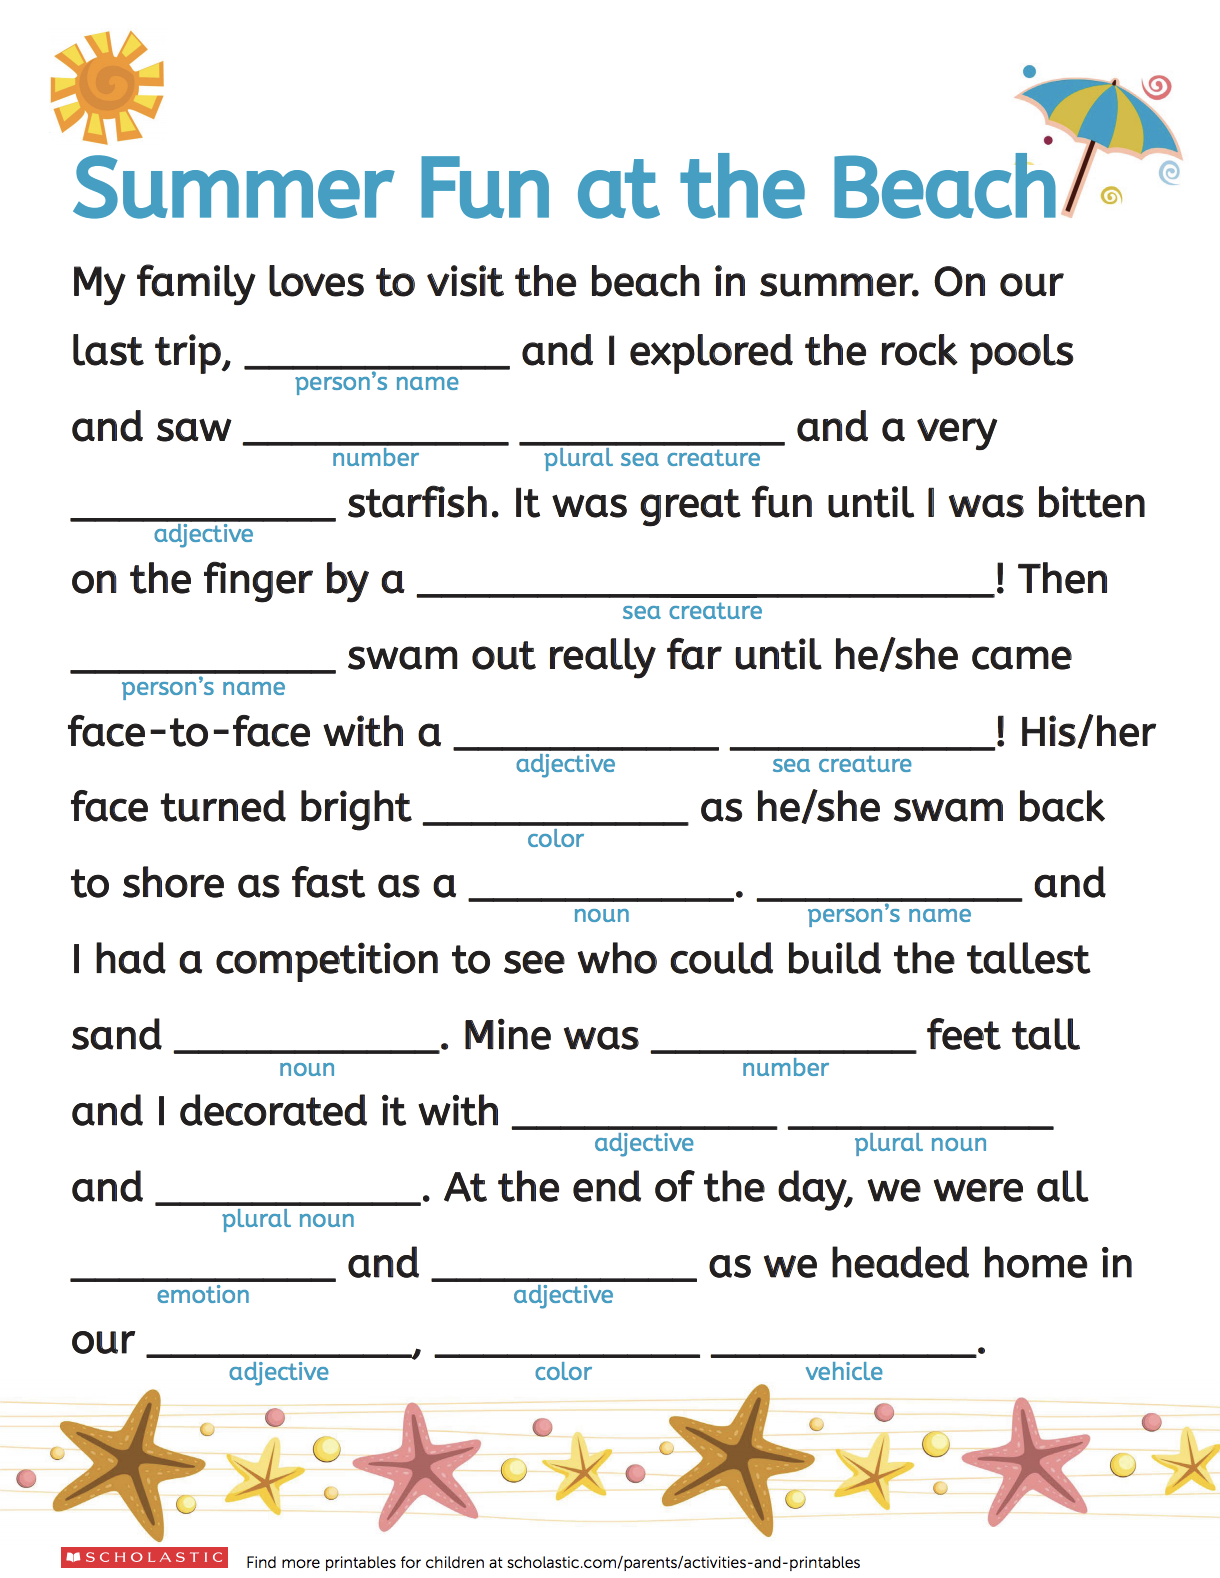 Get Your Kids Ready For A Summer To Remember With This Fun